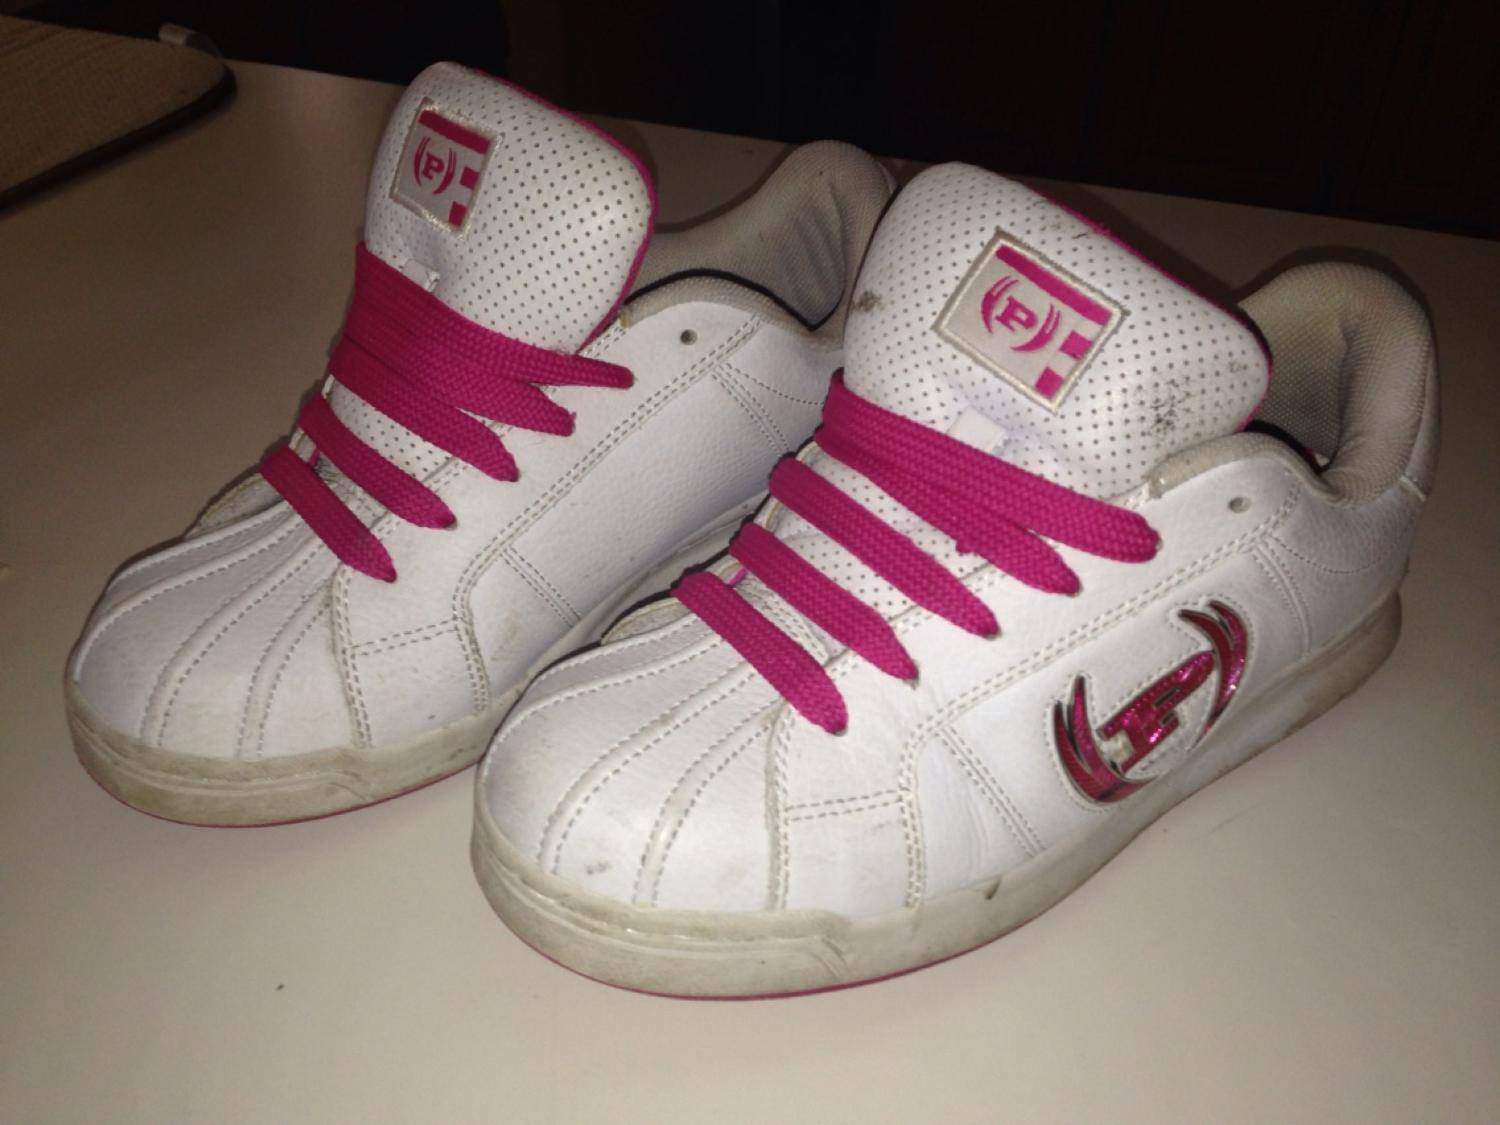 Find more Womens Size 8.5 Pink white Baby Phat Tennis Shoes for sale ... 38117577d